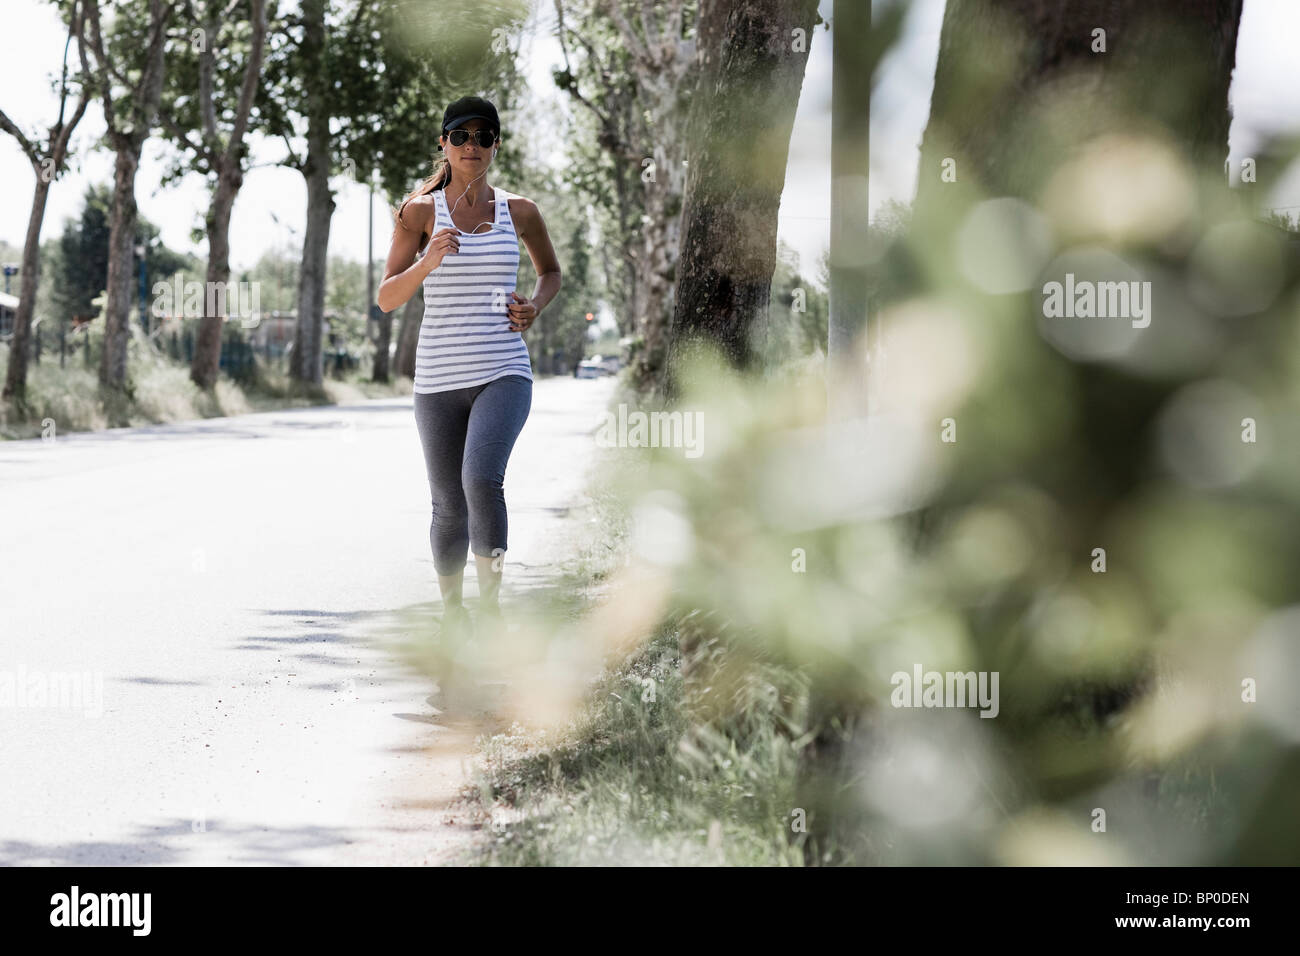 Woman jogging on a street Stock Photo